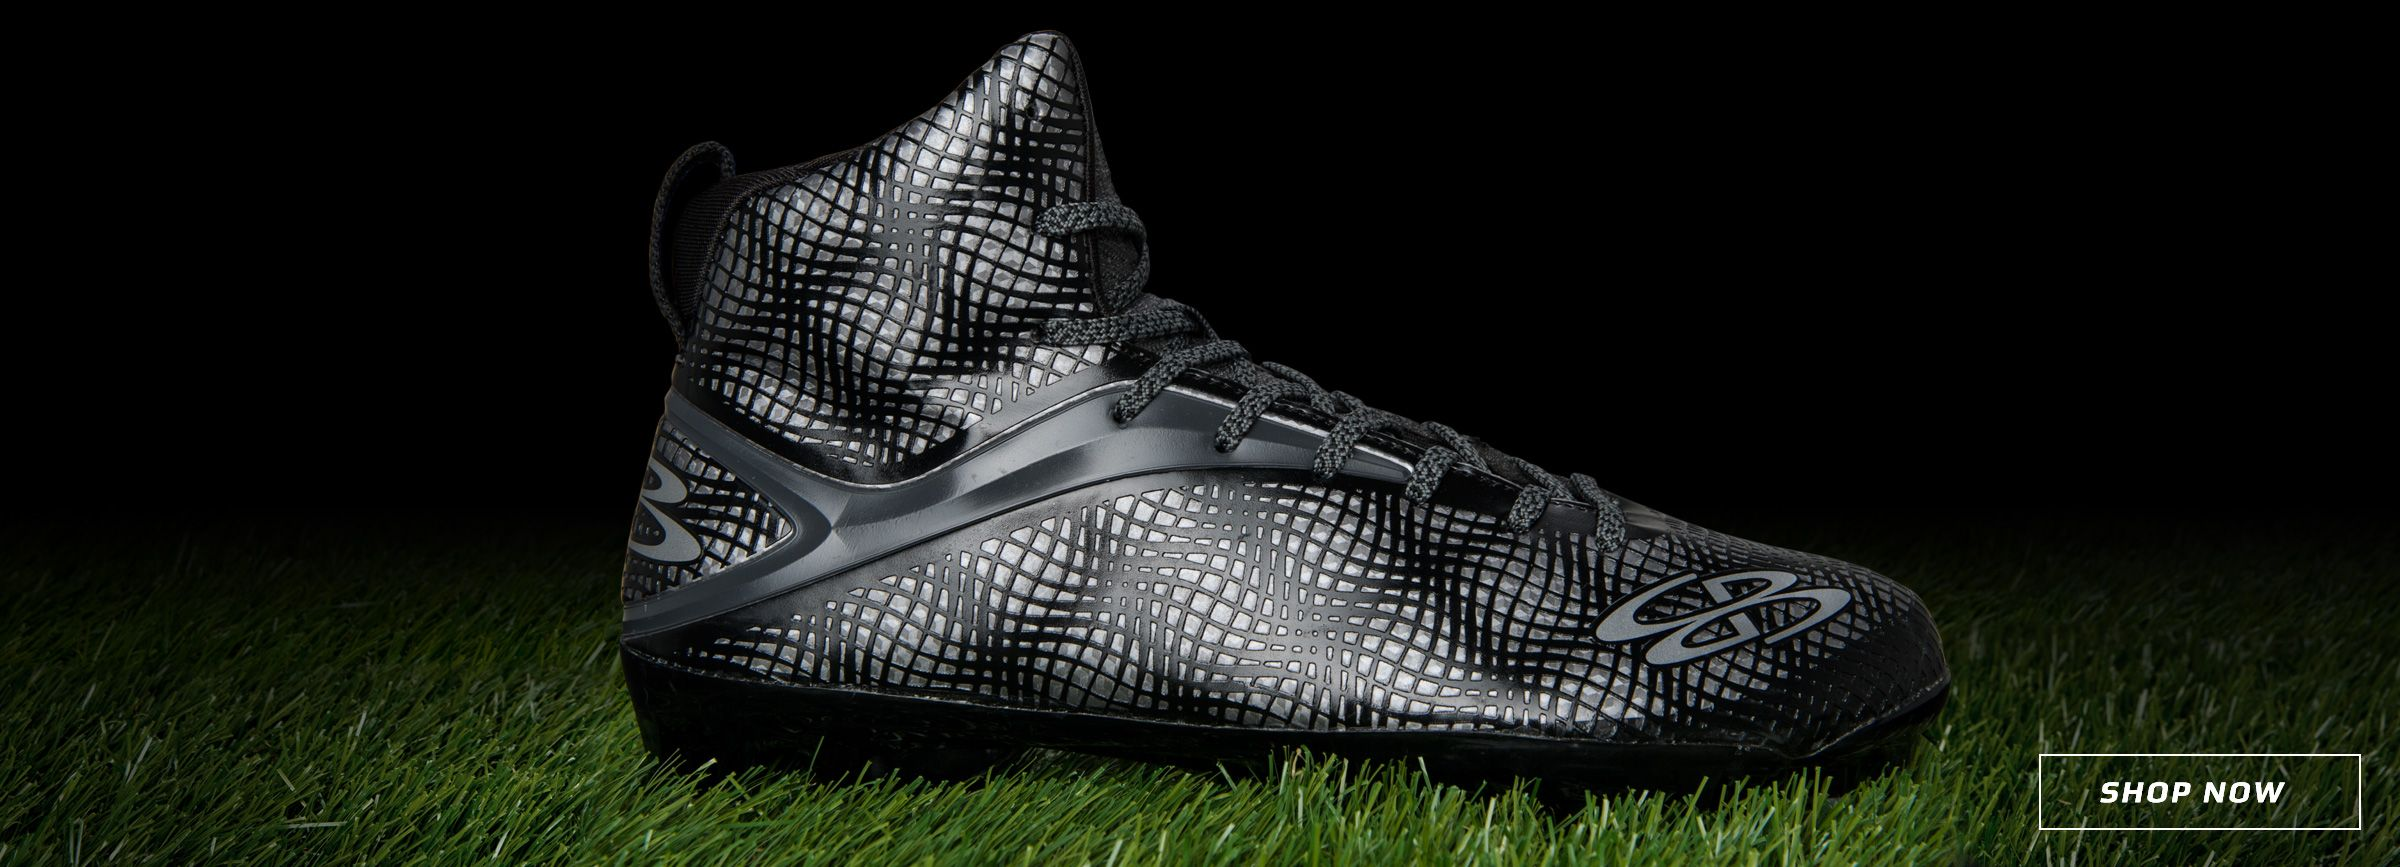 Football Cleats Rampage Boombah